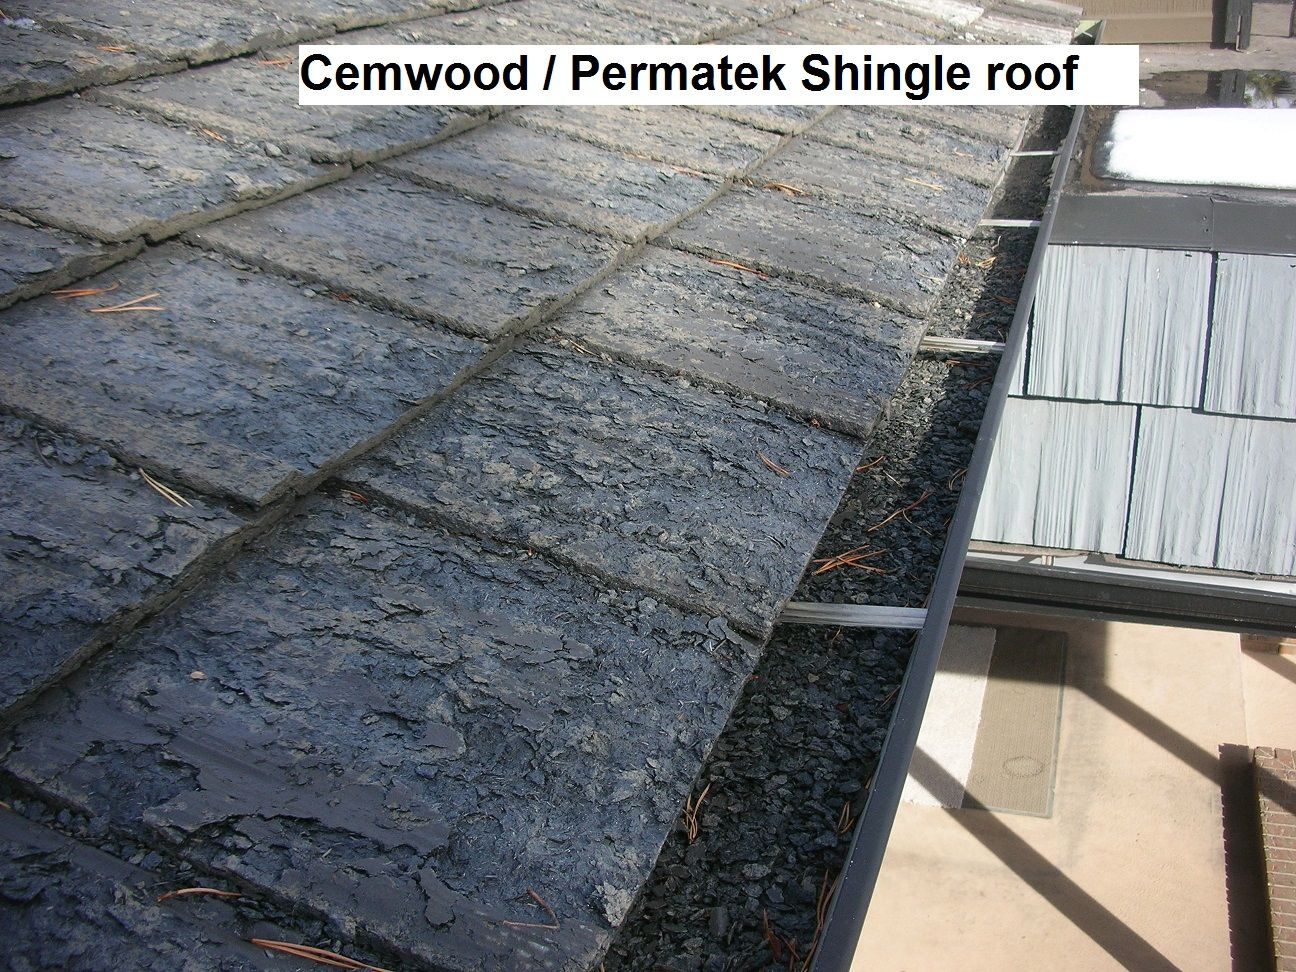 Permatek cemwood roof a lightweight tile roof that didnt stand permatek cemwood roof a lightweight tile roof that didnt stand up well in the field subject of manufacturer recalls and lawsuits ppazfo